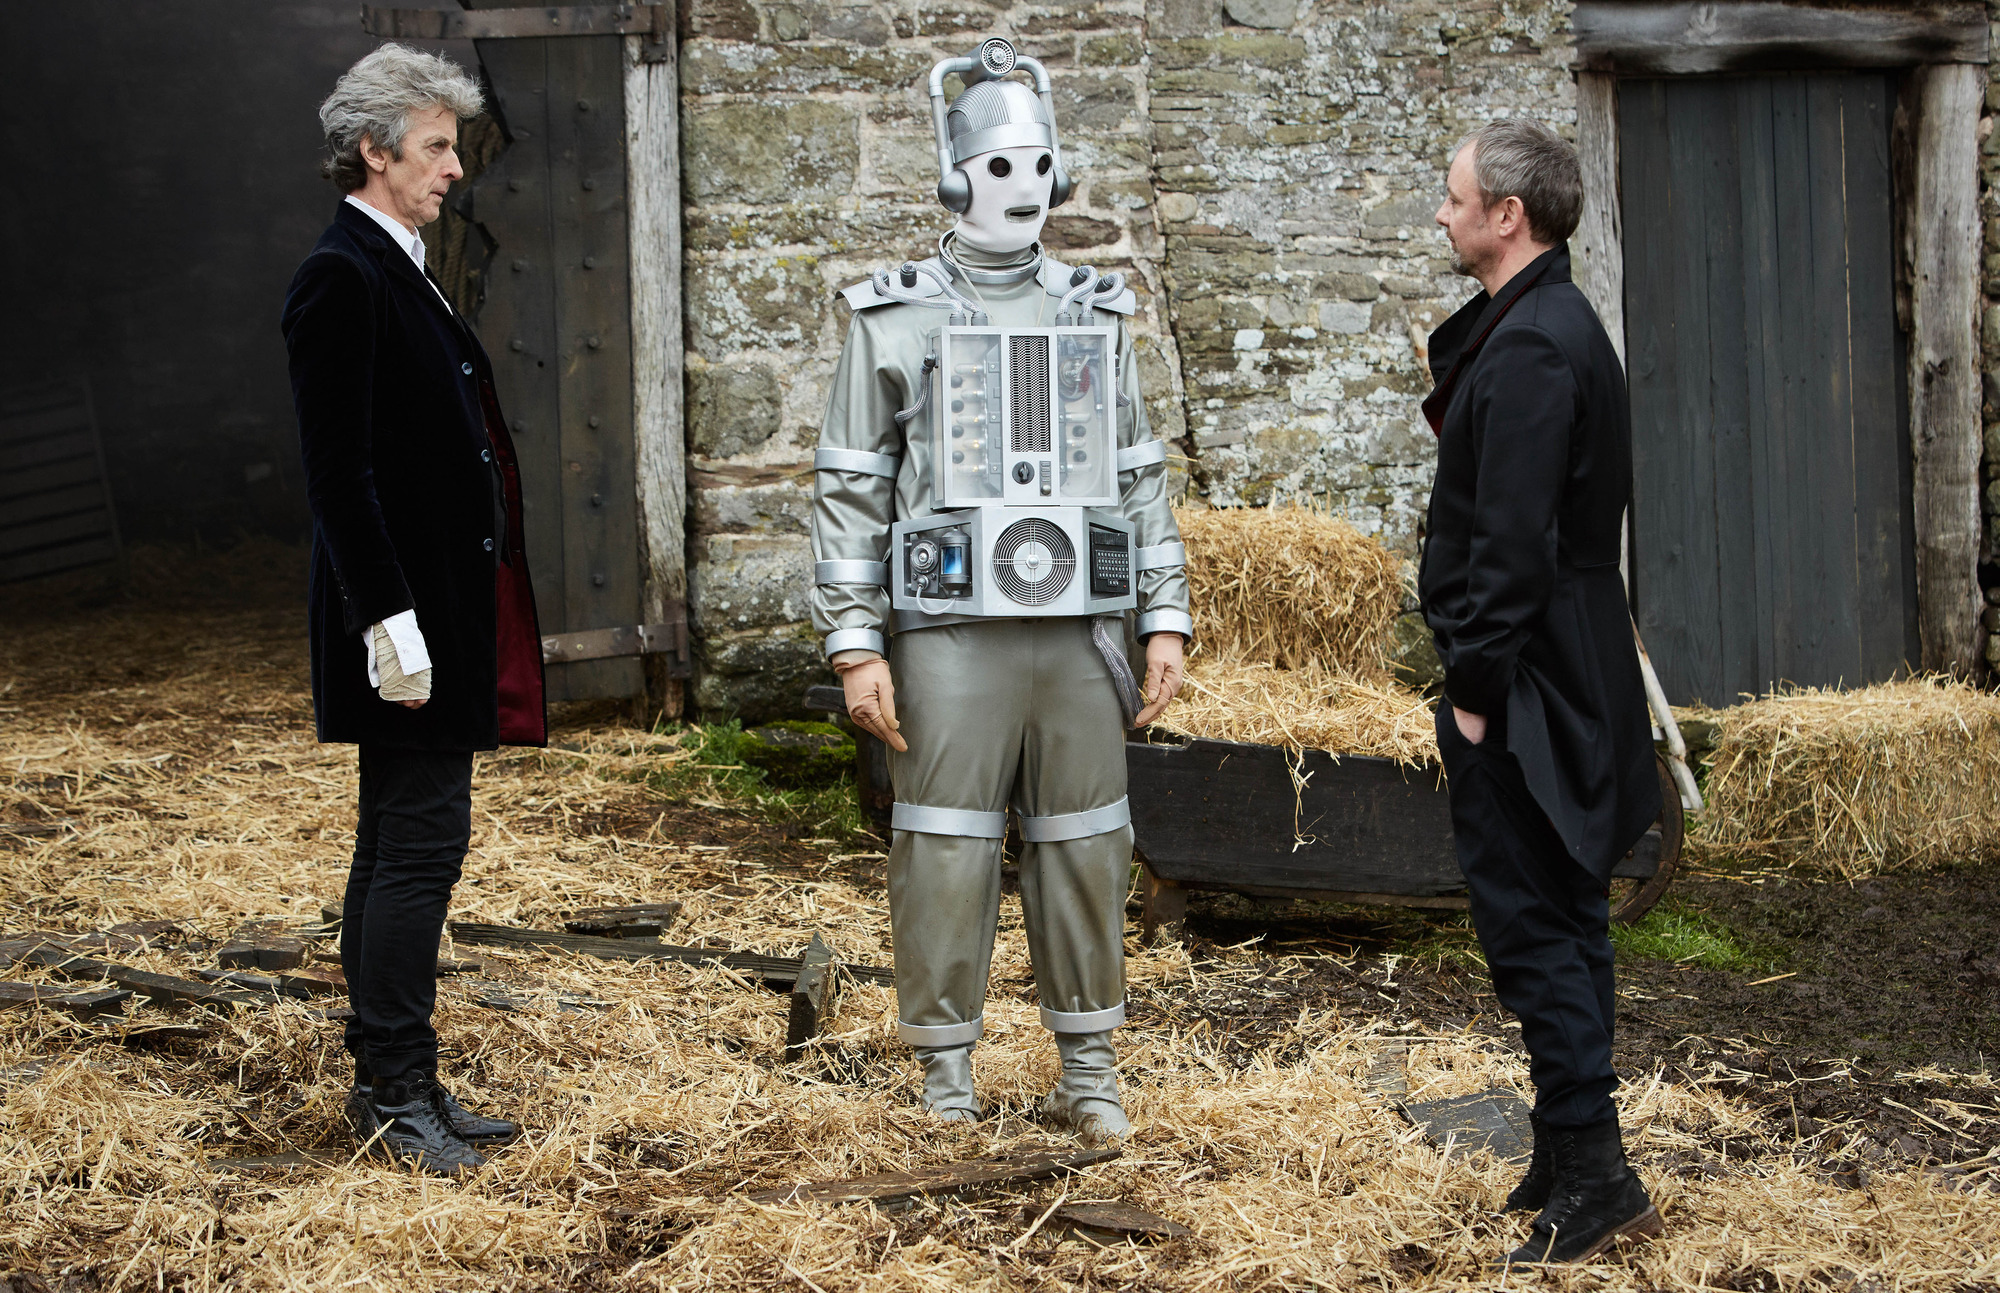 Doctor Who series 10 episode 12: Bill is resurrected, the Master destroys himself – and the Doctor meets another Doctor